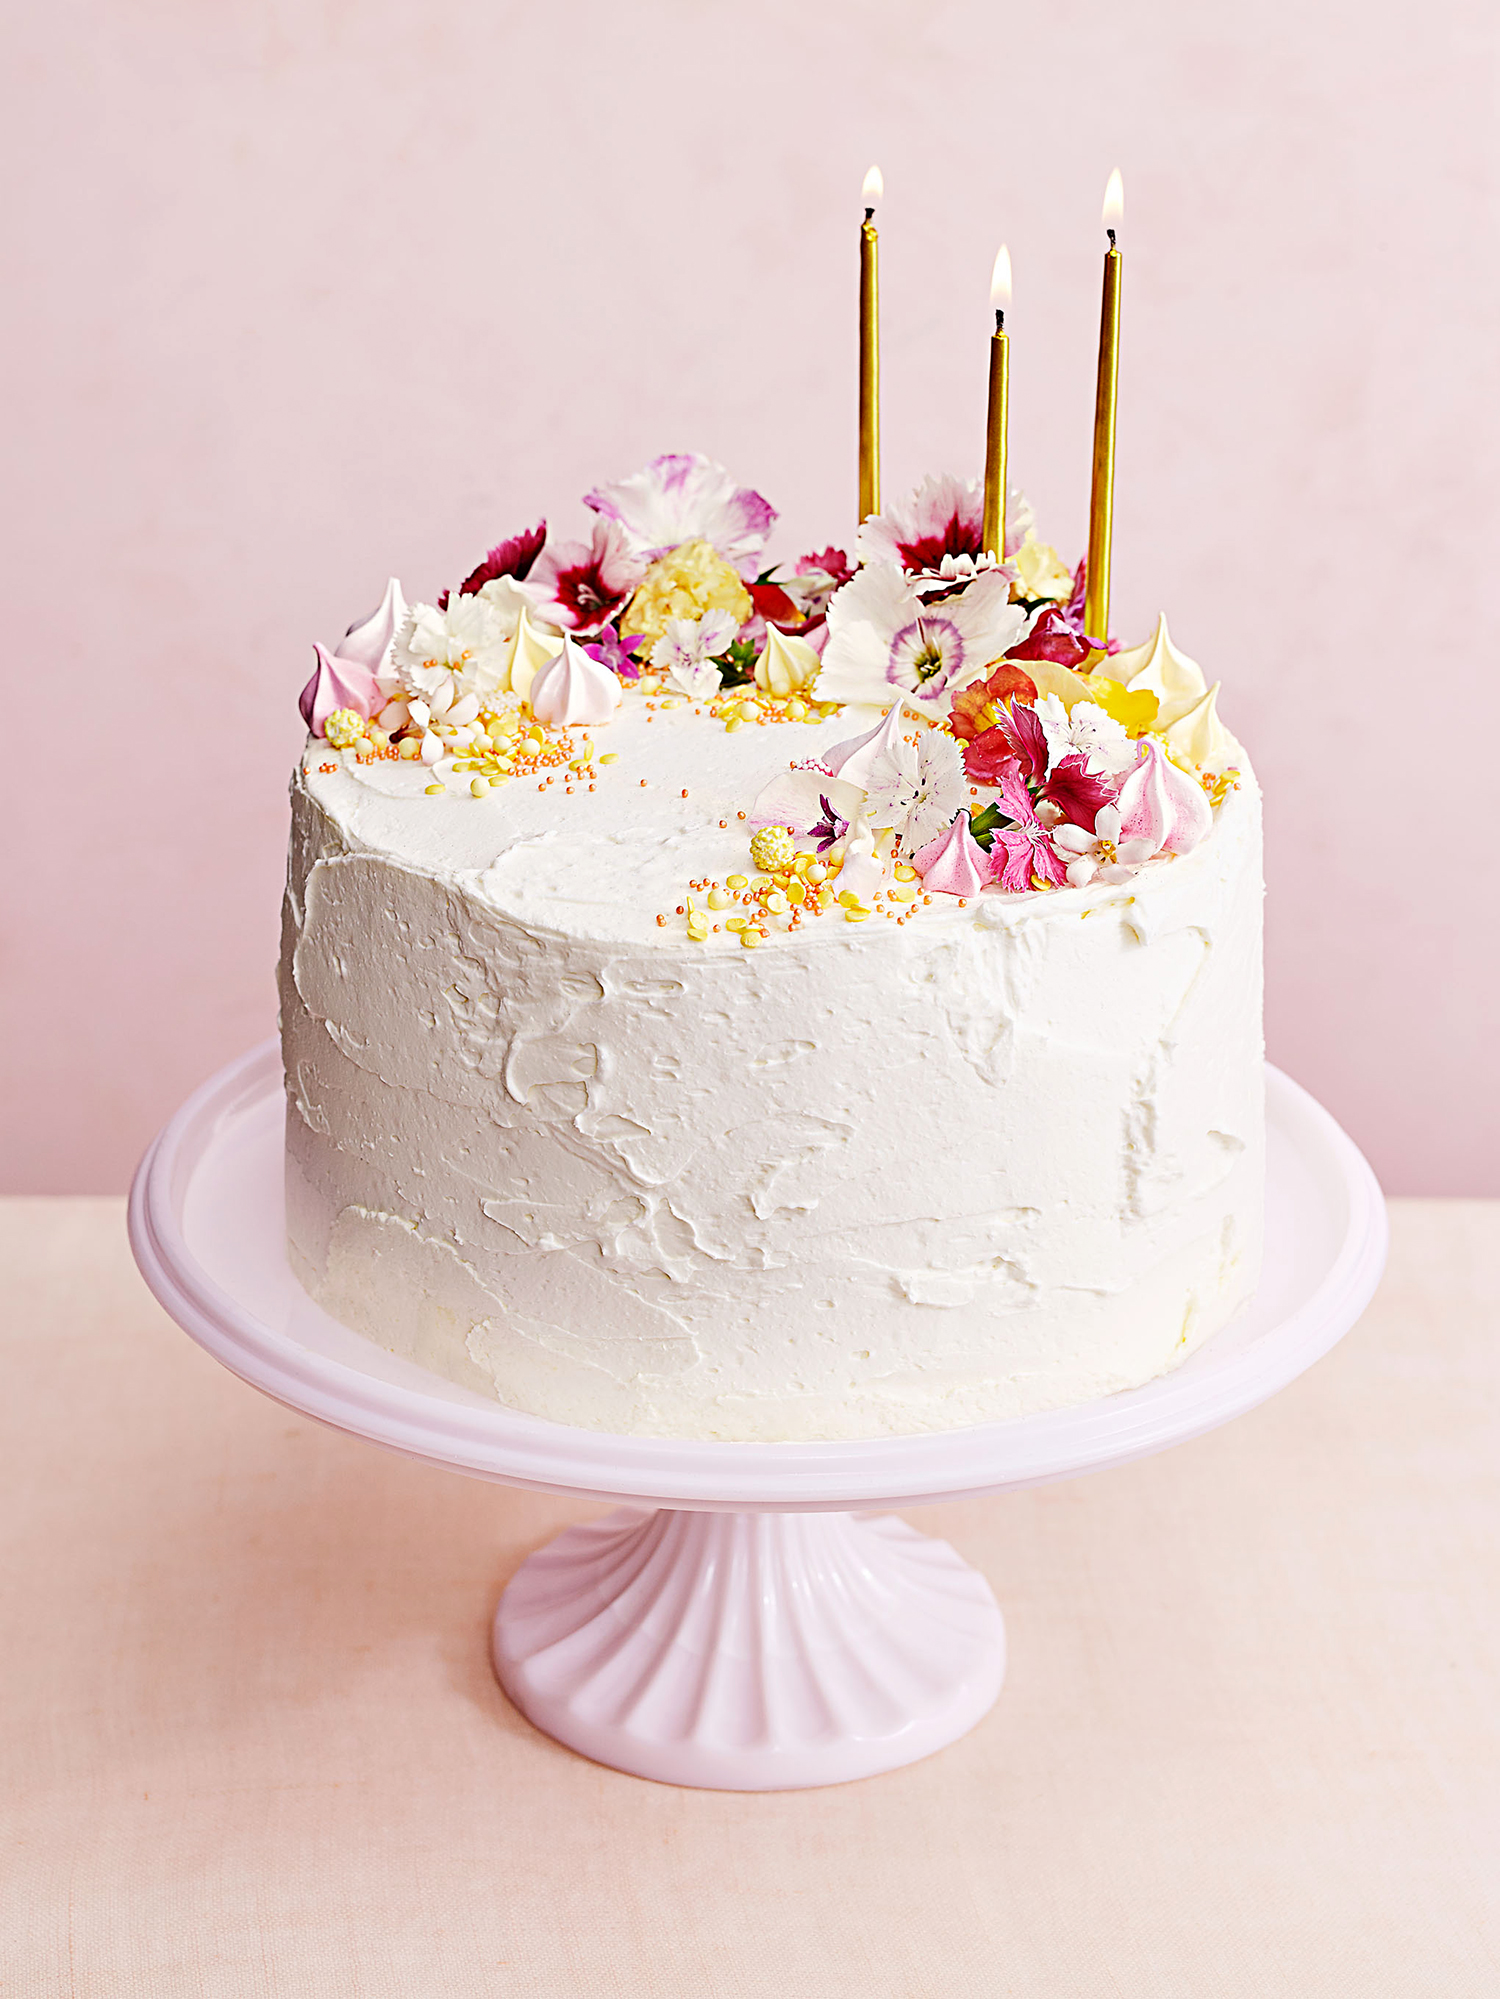 citrus mousse cake with buttercream frosting